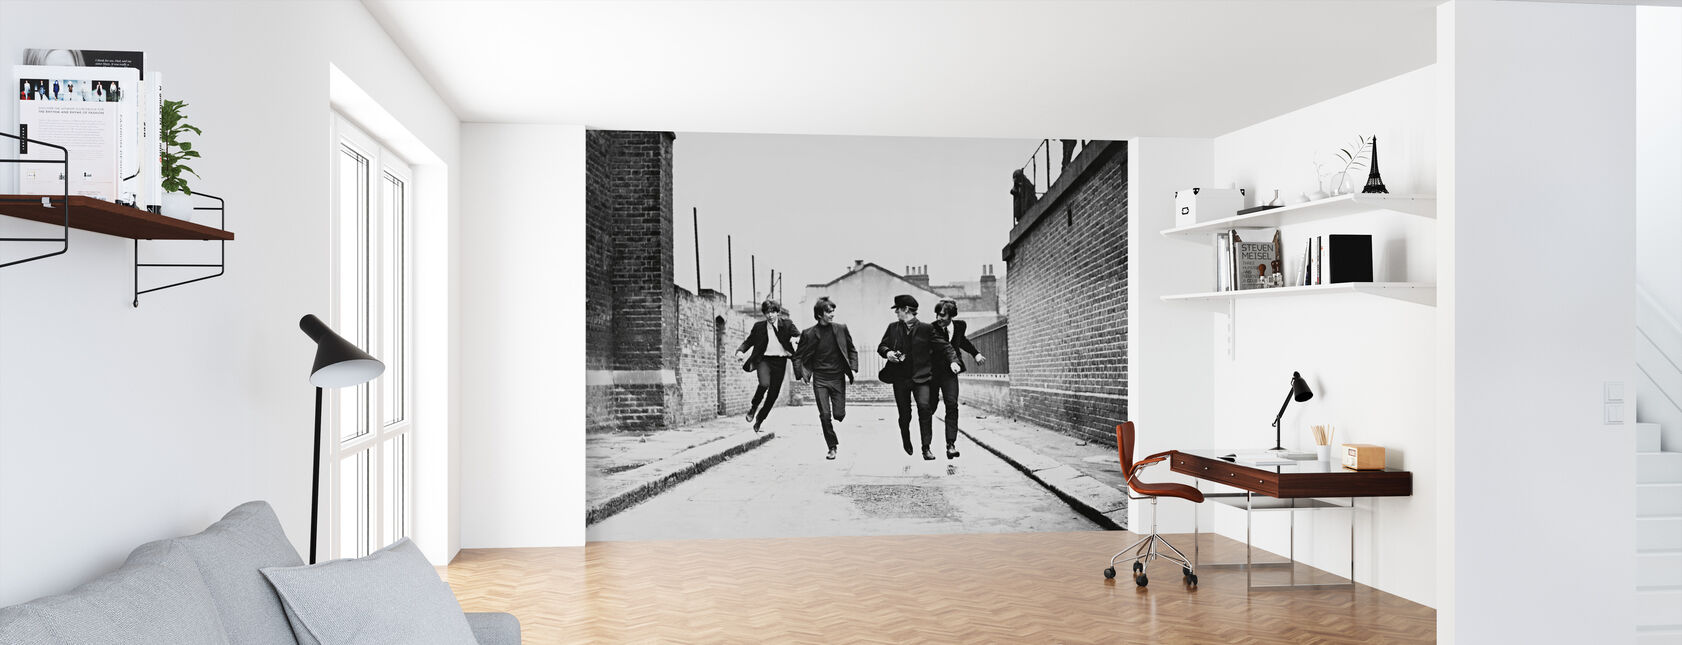 Beatles in a Hard Days Night - Wallpaper - Office